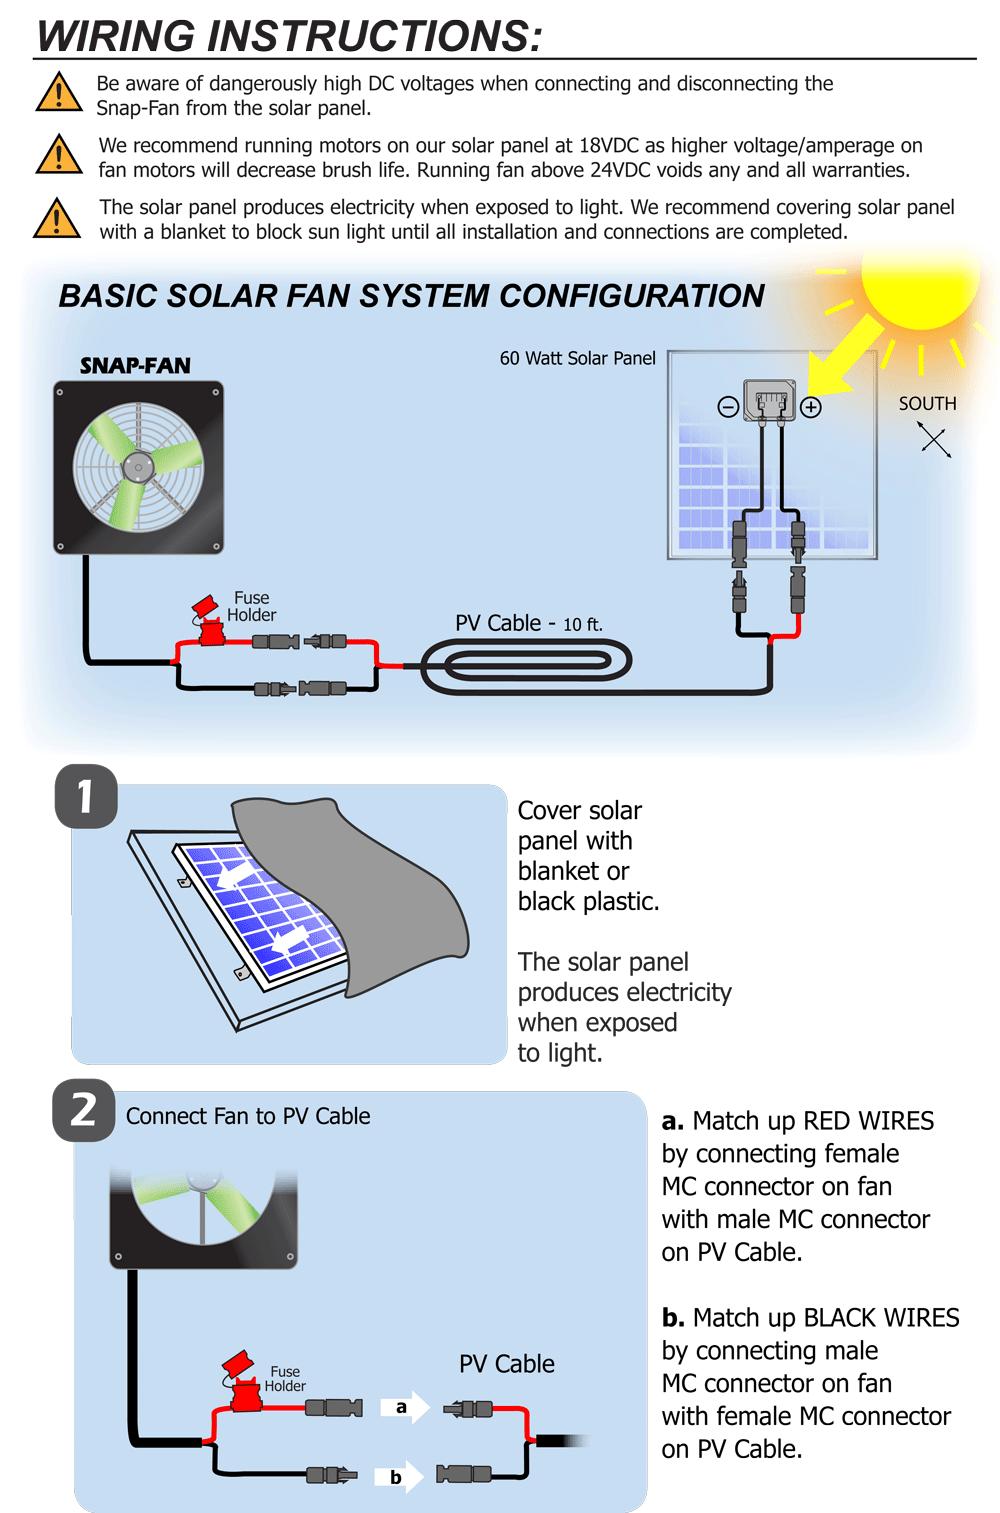 Farm Fans Wiring Diagrams Basic Guide Diagram Collection Electric Blanket Pictures Solar Powered Greenhouse Fan From Snapfans Com Instructions Rh Pinterest Exhaust